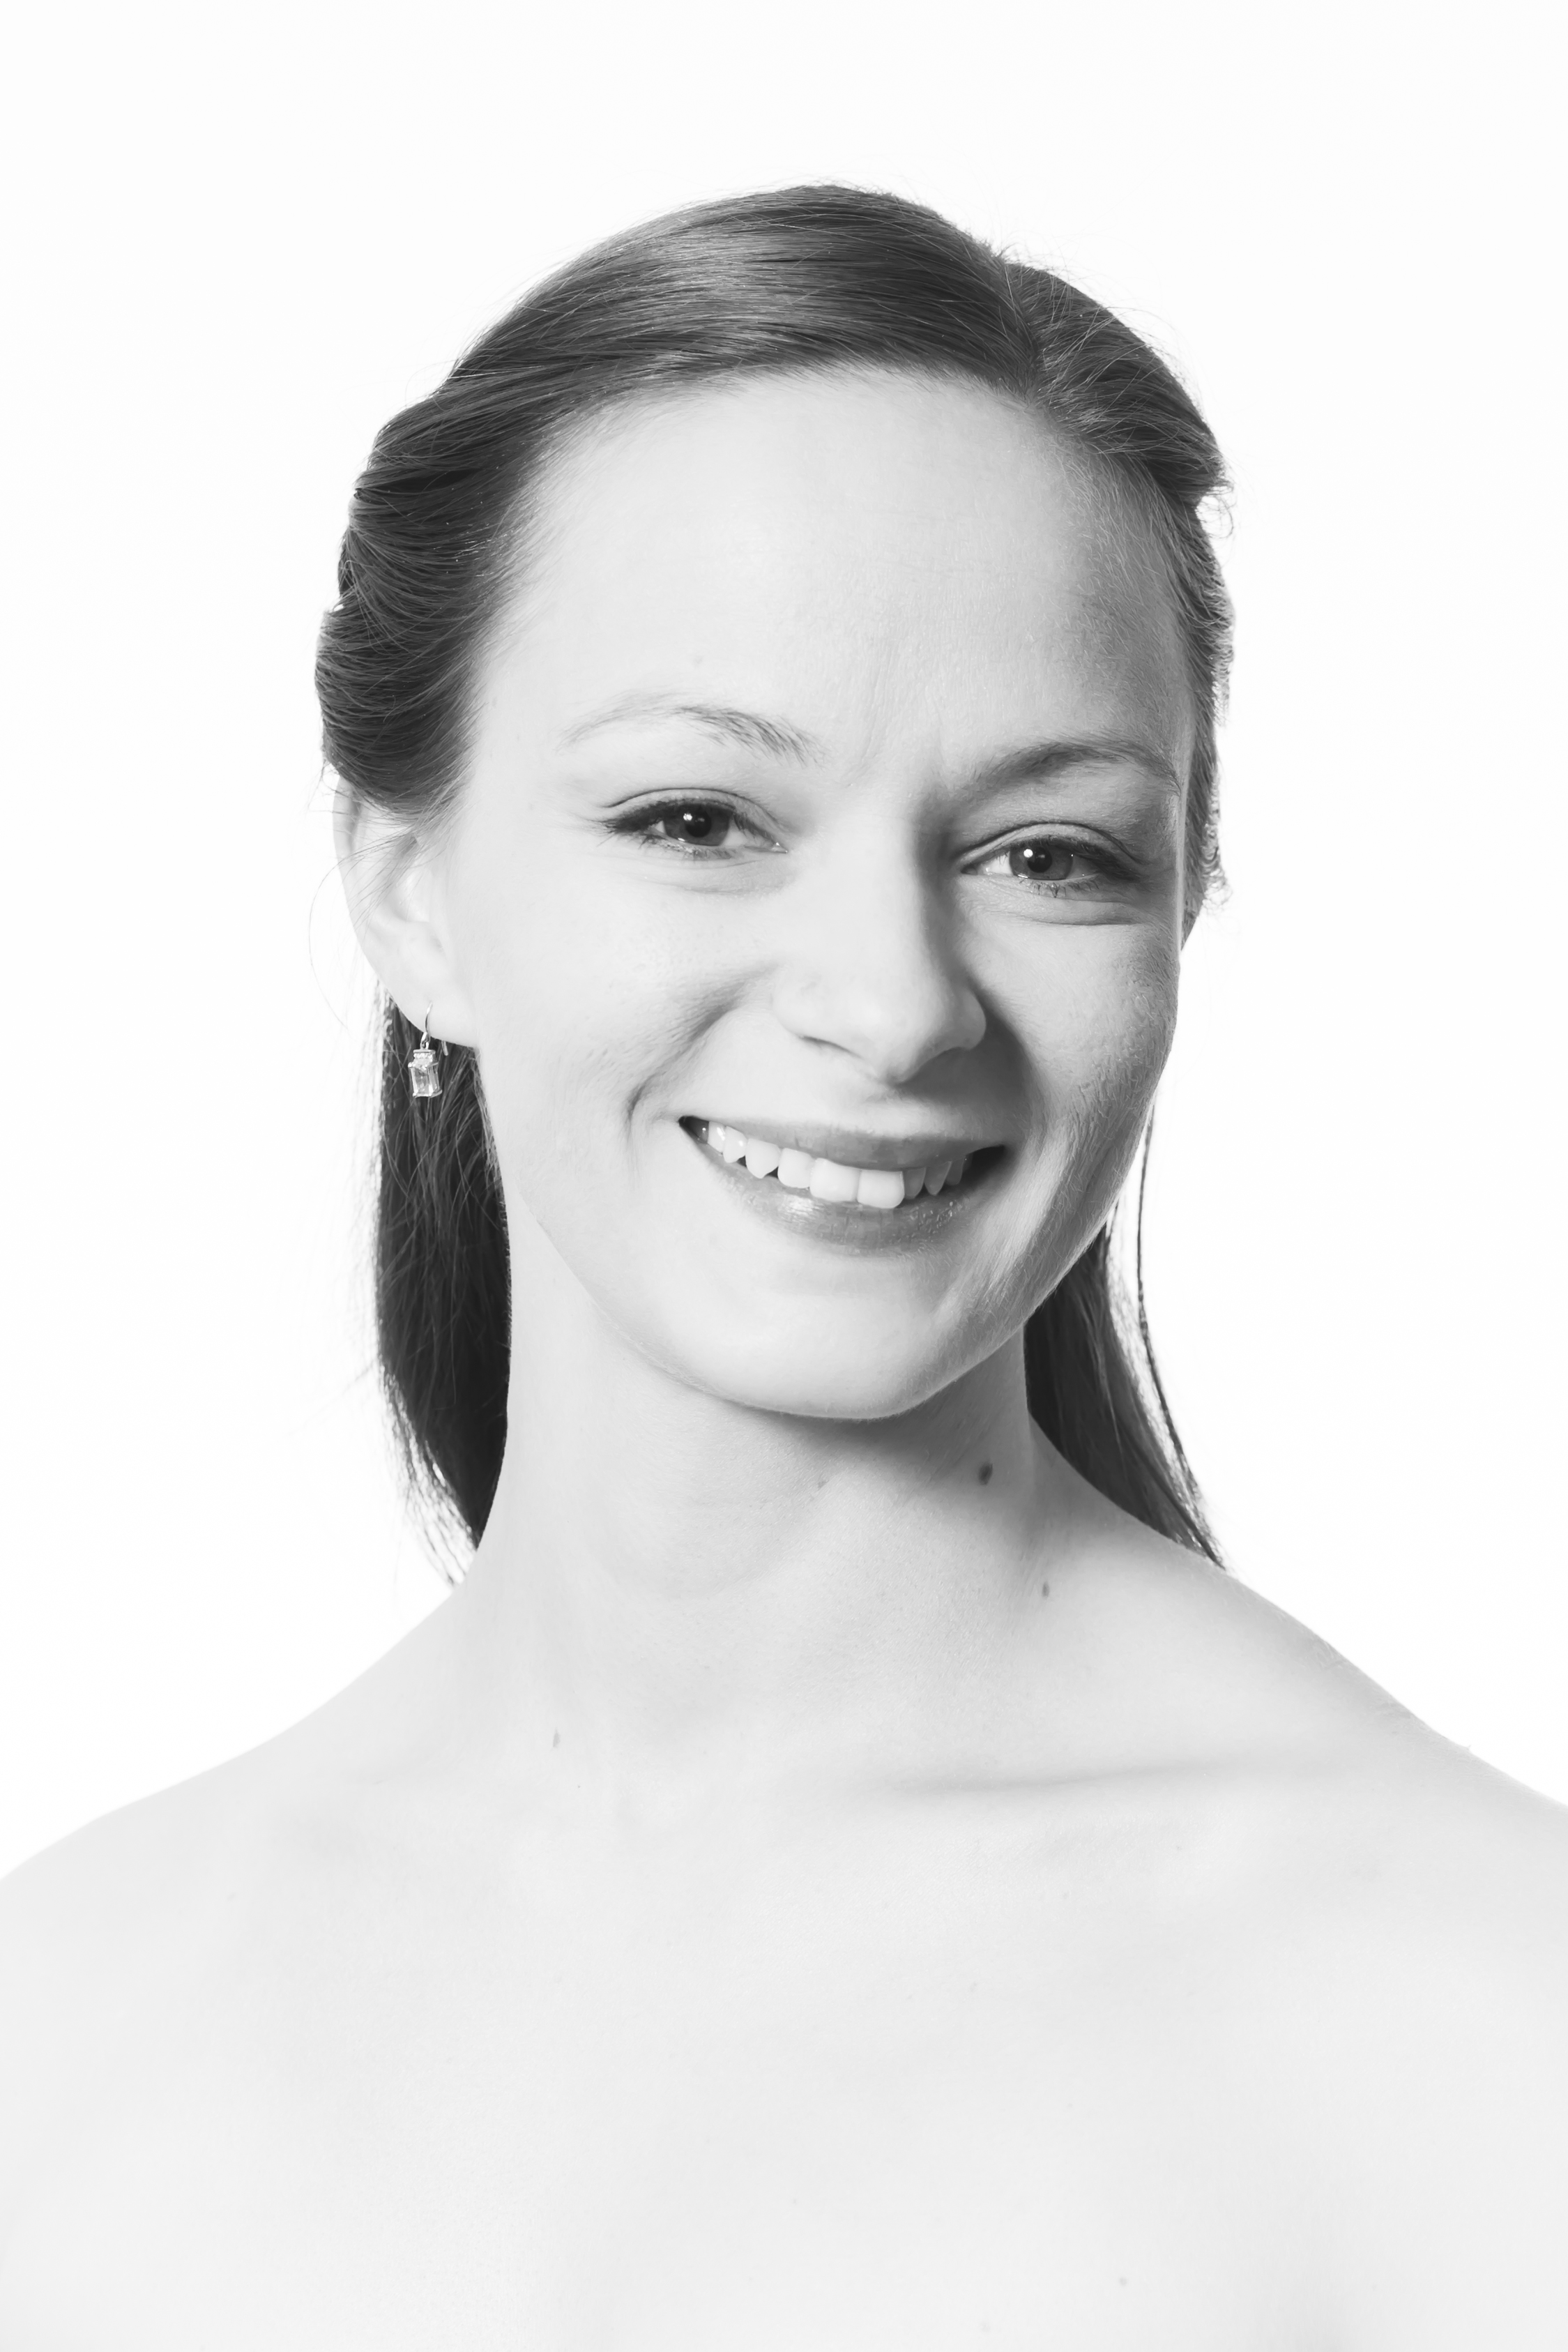 """Audra Tory Solo Artist   Audra fell in love with classical dance at a young age in her hometown of Sydney, commencing her full time training with the prestigious McDonald College of Performing Arts. During this time Audra performed as a local extra for productions with The Australian Ballet and The Royal Ballet. Audra was also a member of the youth ballet company, Premier State Ballet.  Following completion of her secondary education, Audra travelled to the USA to train with Ajkun Ballet Theatre before joining Atlantic City Ballet as an Apprentice. Upon returning home, Audra worked with Sydney Ballet Theatre before moving to Melbourne. At this time she joined Melbourne City Ballet as part of our Finishing Year (Pre-Professional) Program before being offered an internship with the company.  Audra has appeared in most of the company's productions since joining, including appearing as Rosalind in """"Romeo & Juliet"""". Audra was promoted to Junior Artist from the commencement of 2017."""